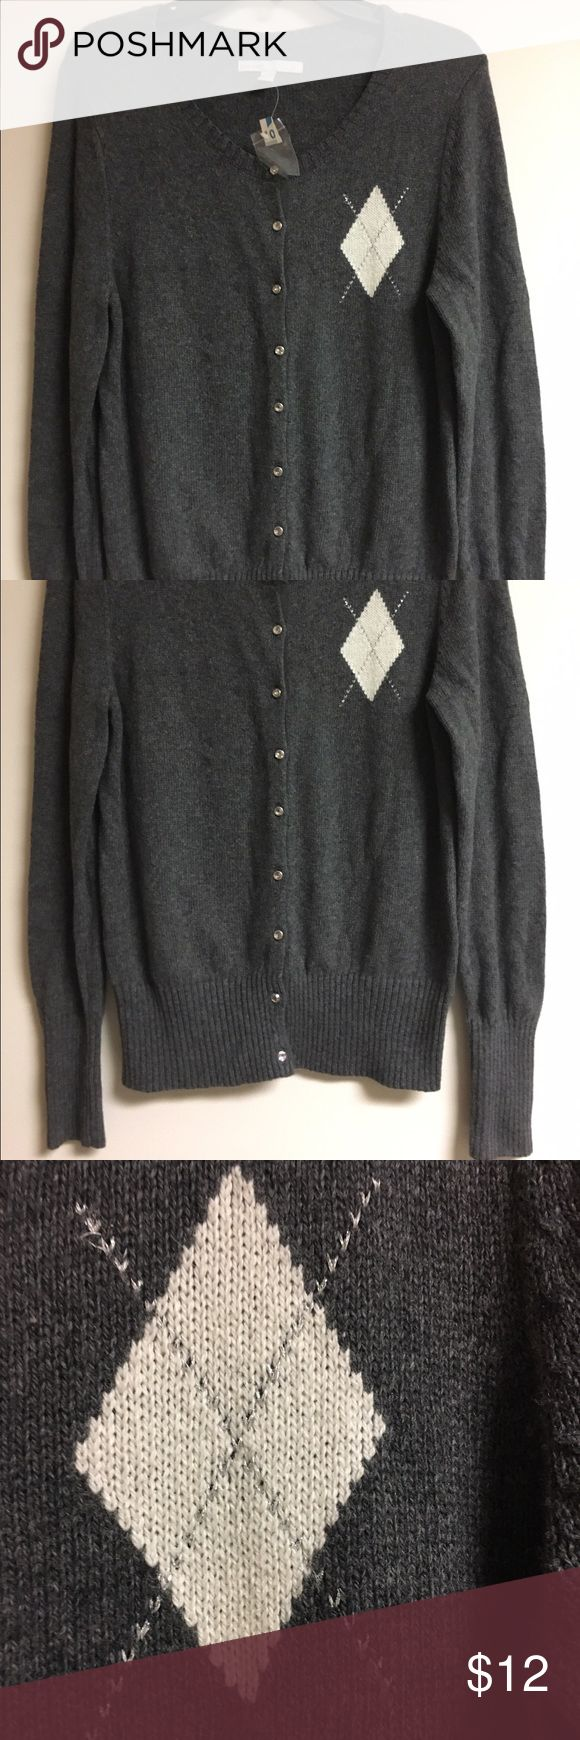 New Old Navy Gray Button Up Cardigan Sweater Large Brand new Old Navy gray Button Up Cardigan Sweater size large. Excellent condition, never worn. No holes, no stains, no flaws of any kind. Check my other items for bundles! I'll be listing about 200 items in the next week or so. I have entirely too many clothes and I'm running out of closet space! Time to consolidate and find new homes for all these pieces. All items come from a smoke free home. Offering a 10% bundle discount on 3+ items…